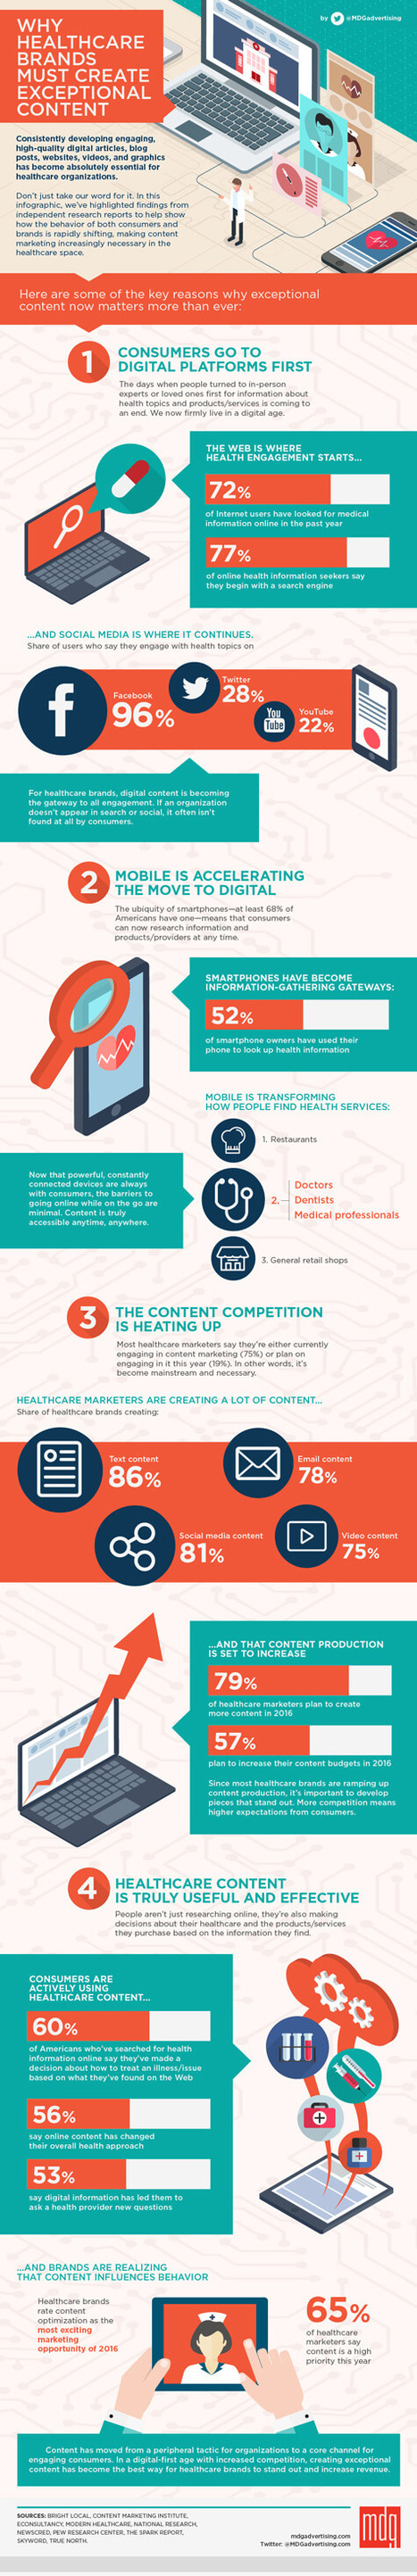 Why Healthcare Brands Must Create Exceptional Digital Content [Infographic] | Social Media, Mobile, Wearable News & Views | Scoop.it